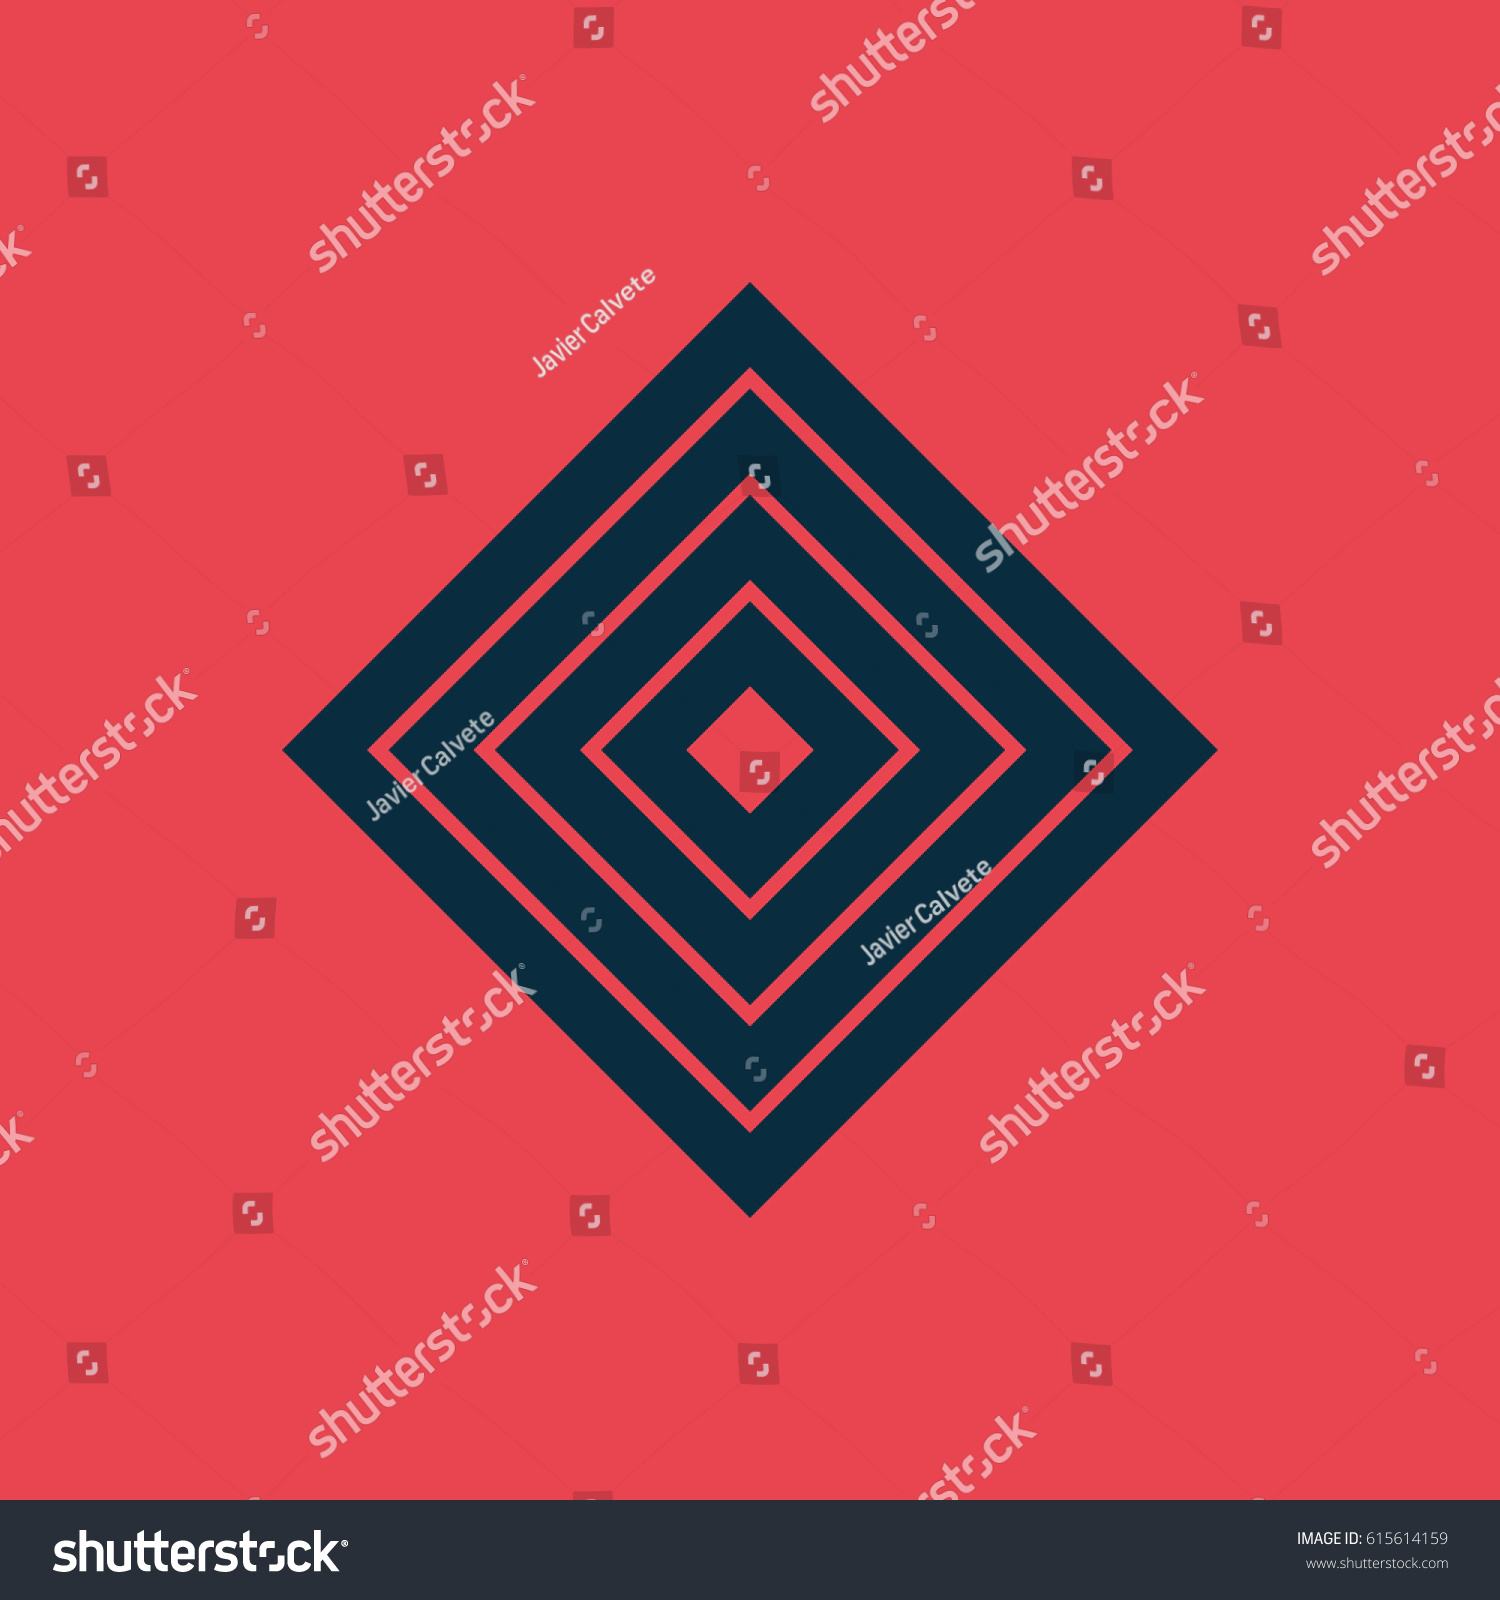 Muisca symbol colombian culture stock vector 615614159 shutterstock muisca symbol colombian culture buycottarizona